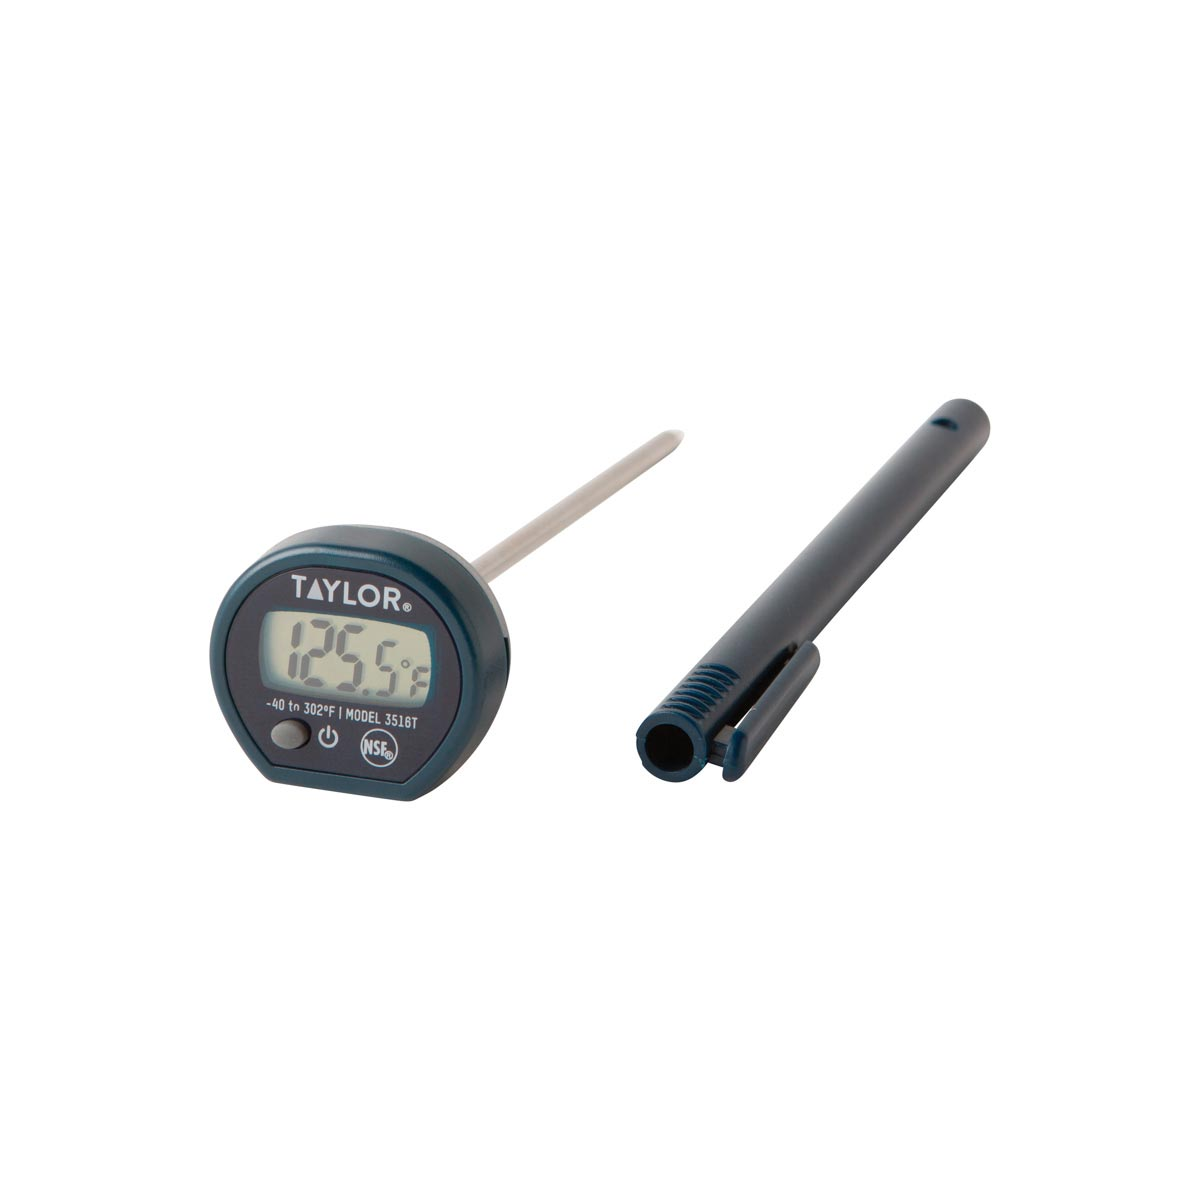 Taylor Precision 3516FS thermometer, pocket